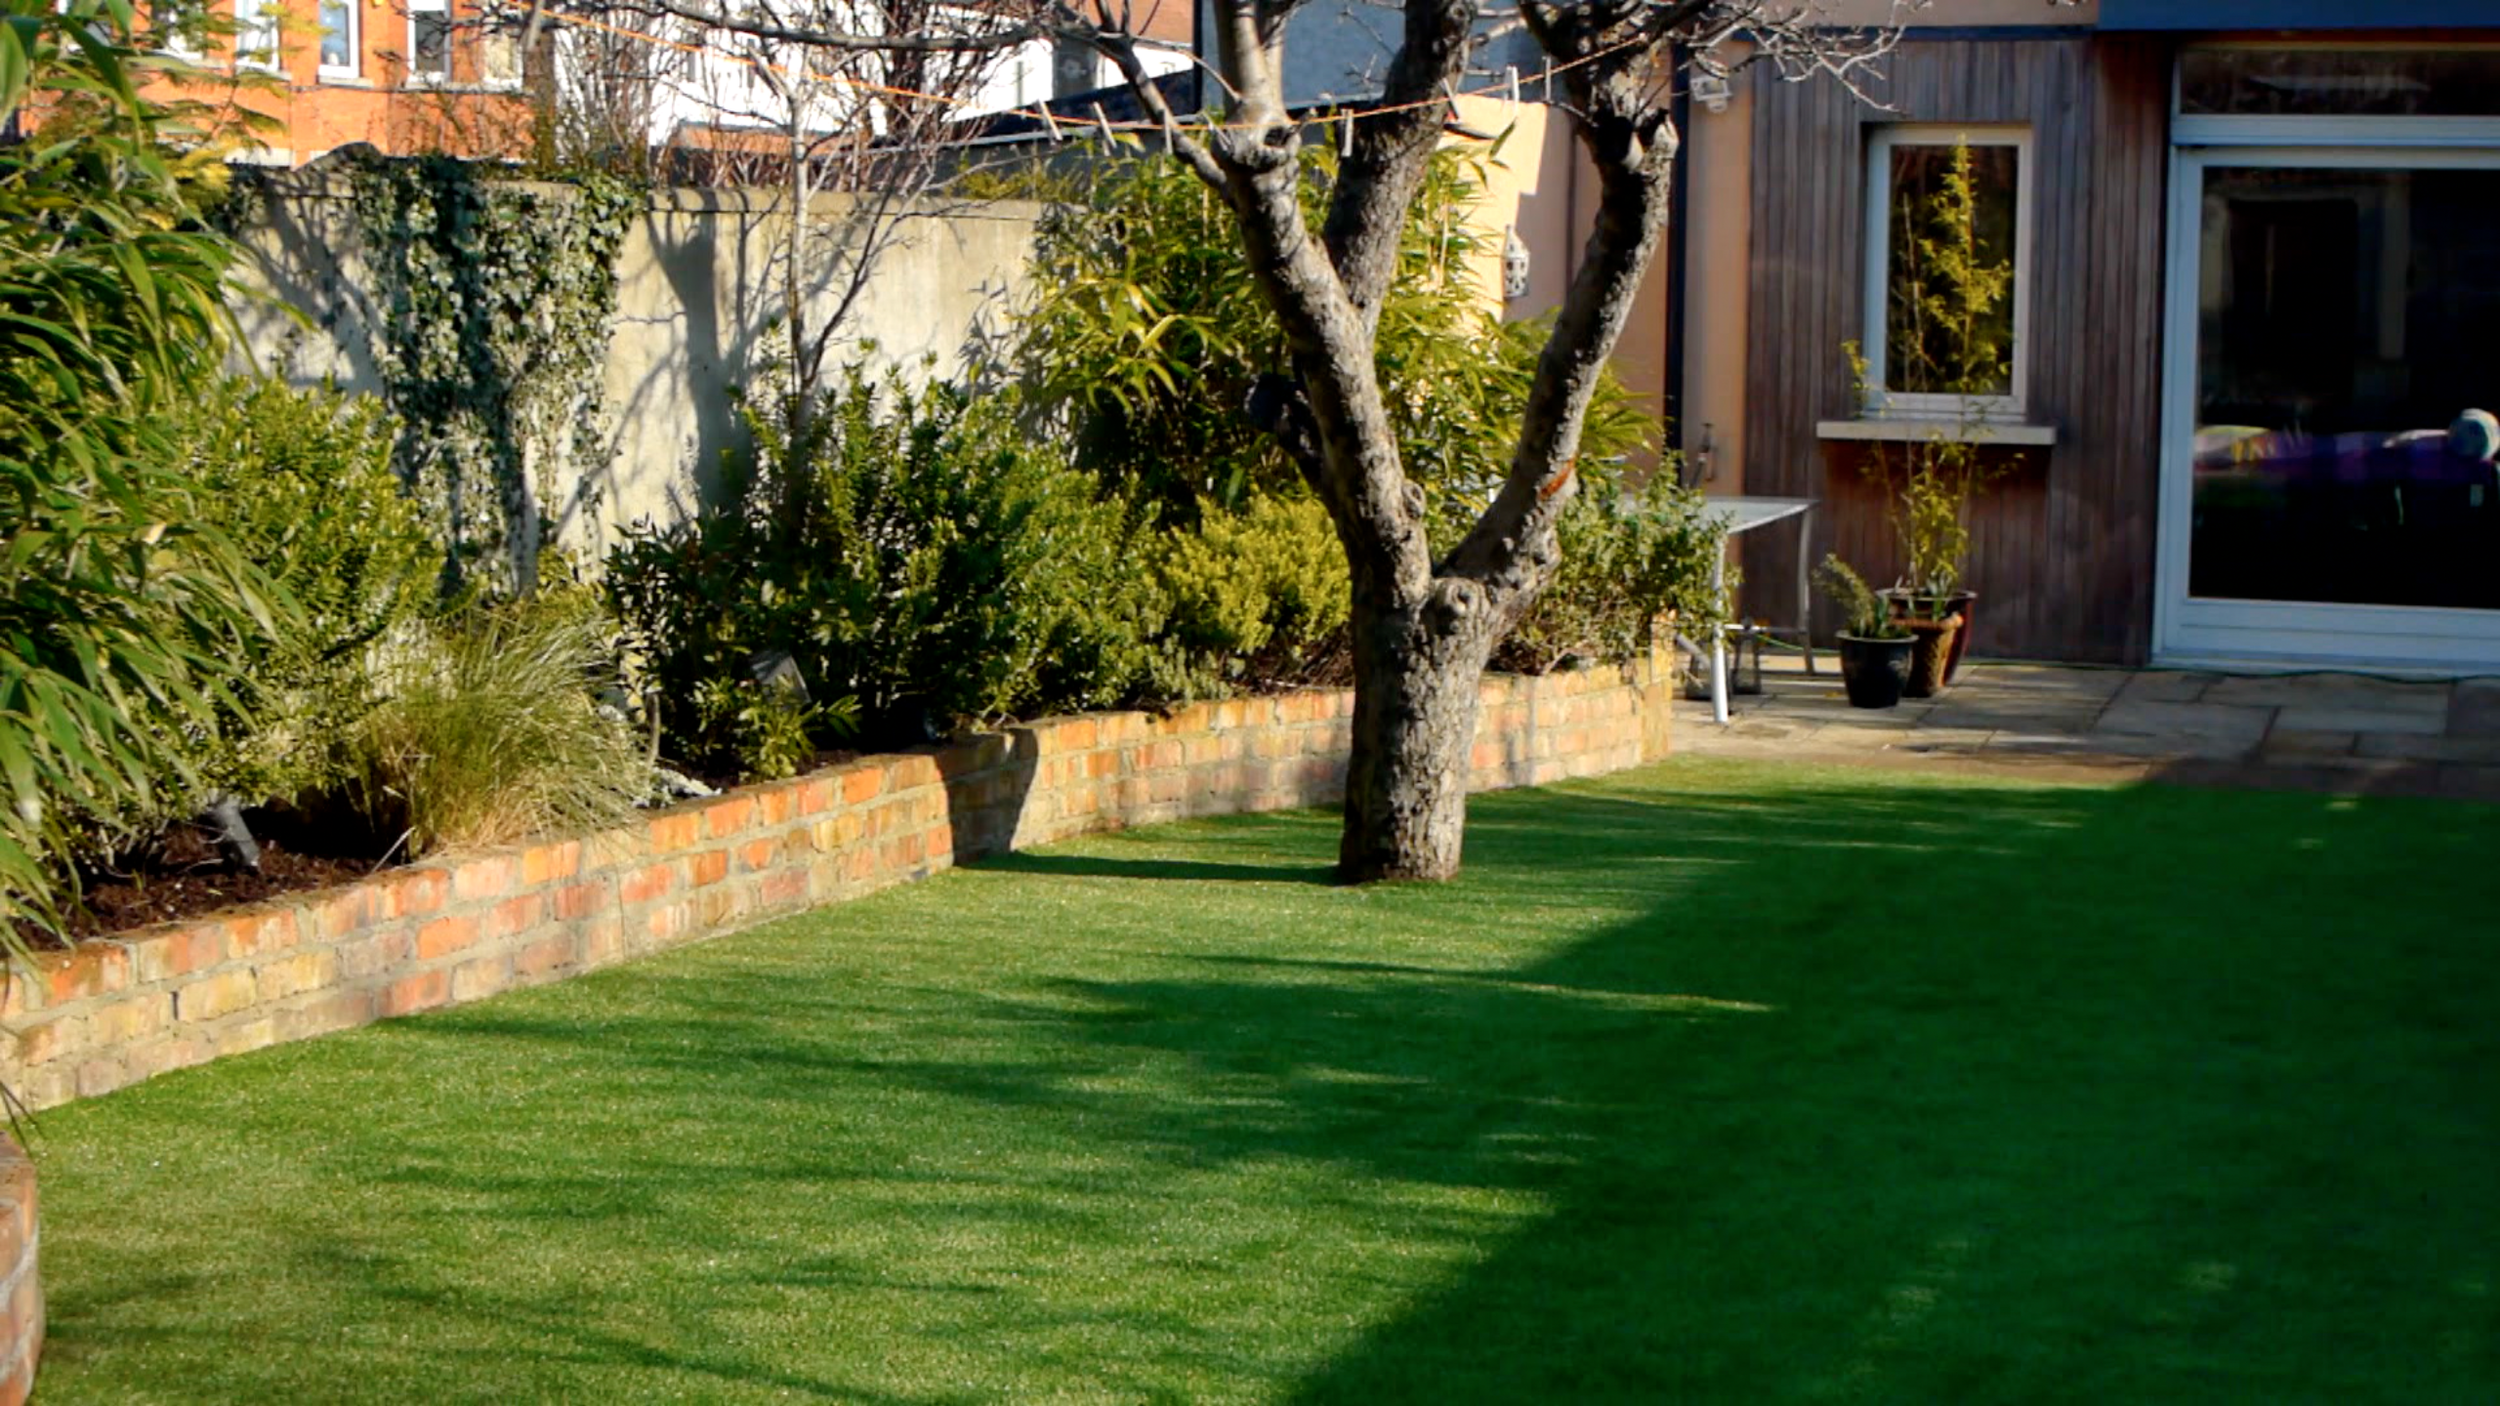 old apple tree and artificial lawn